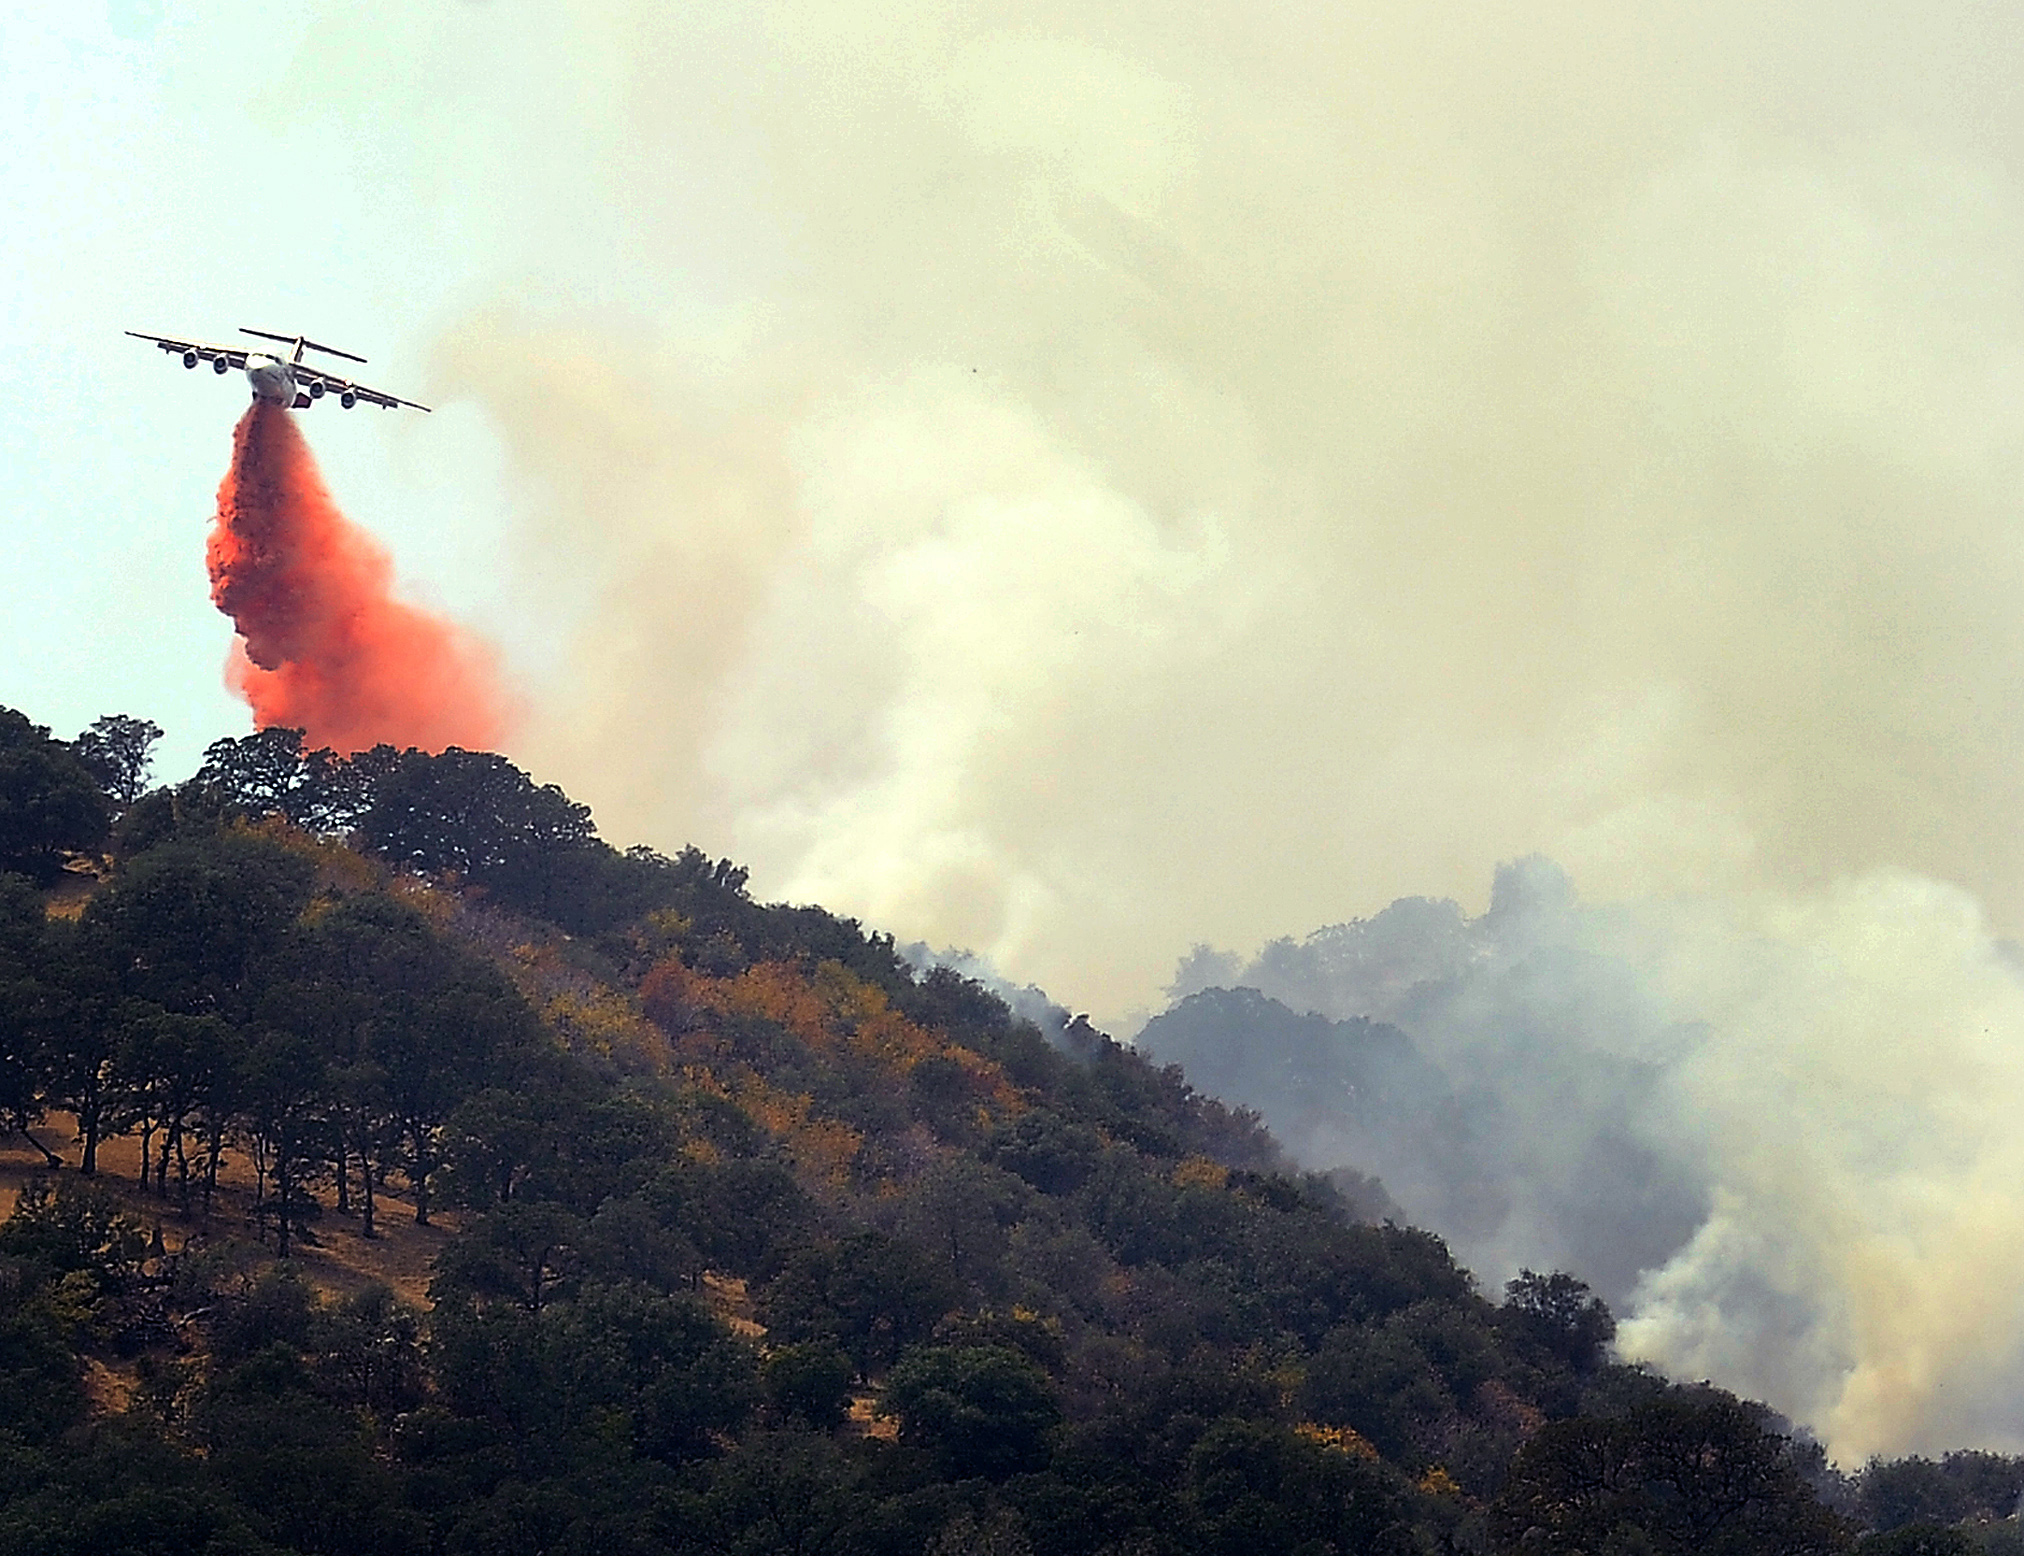 CalFire Air tanker drops fire retardant on a ridge above Pleasants Valley Rd. near Winters, Calif., as crews continue to battle the Wragg Fire on July 23, 2015.